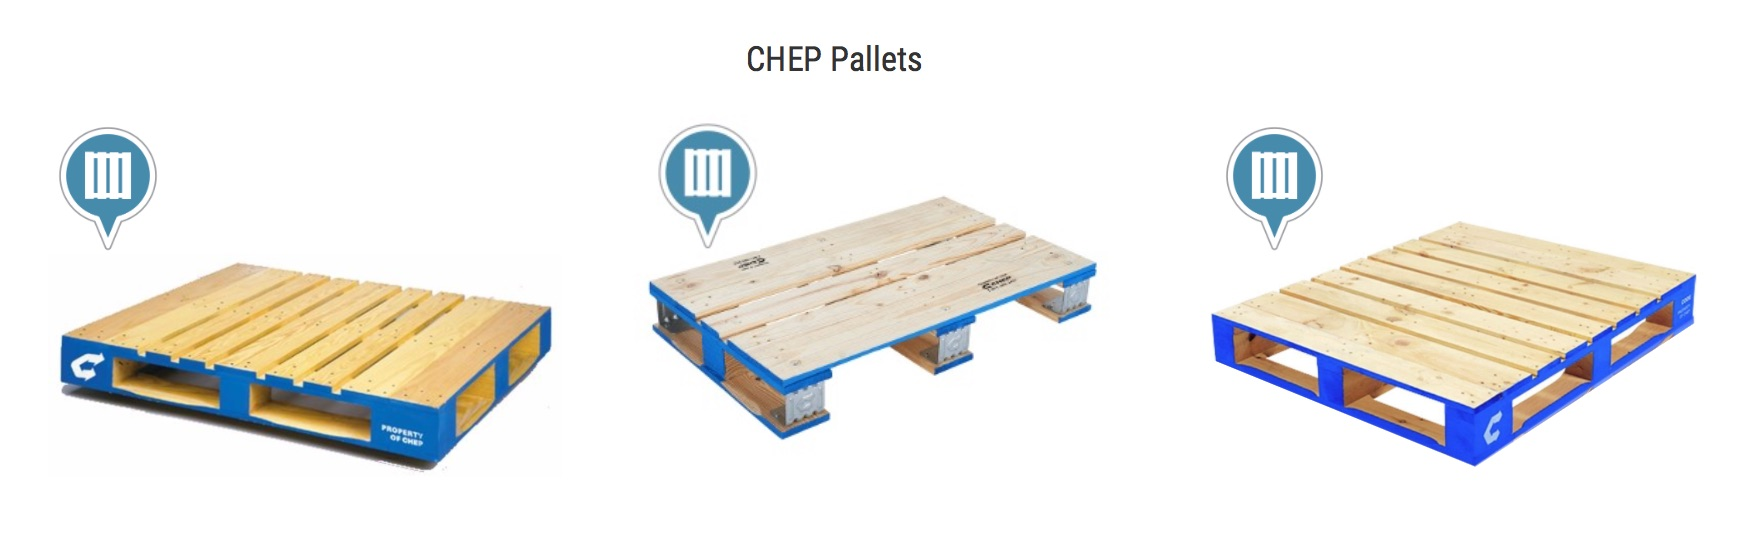 Damaged Chep Pallet Related Keywords & Suggestions - Damaged Chep